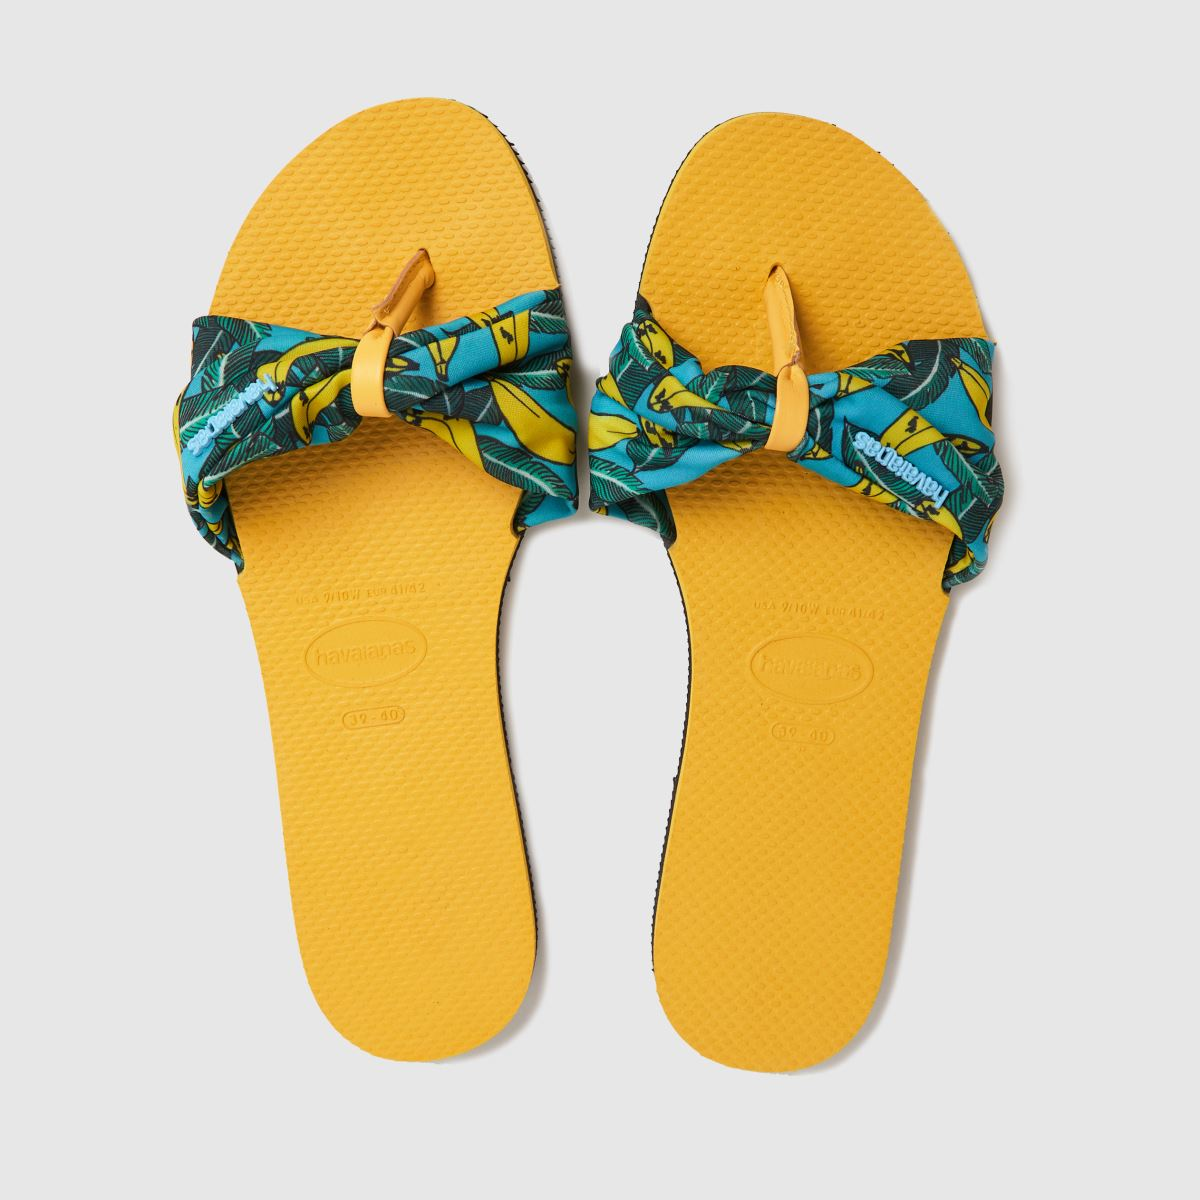 Havaianas Yellow You Saint Tropez Sandals